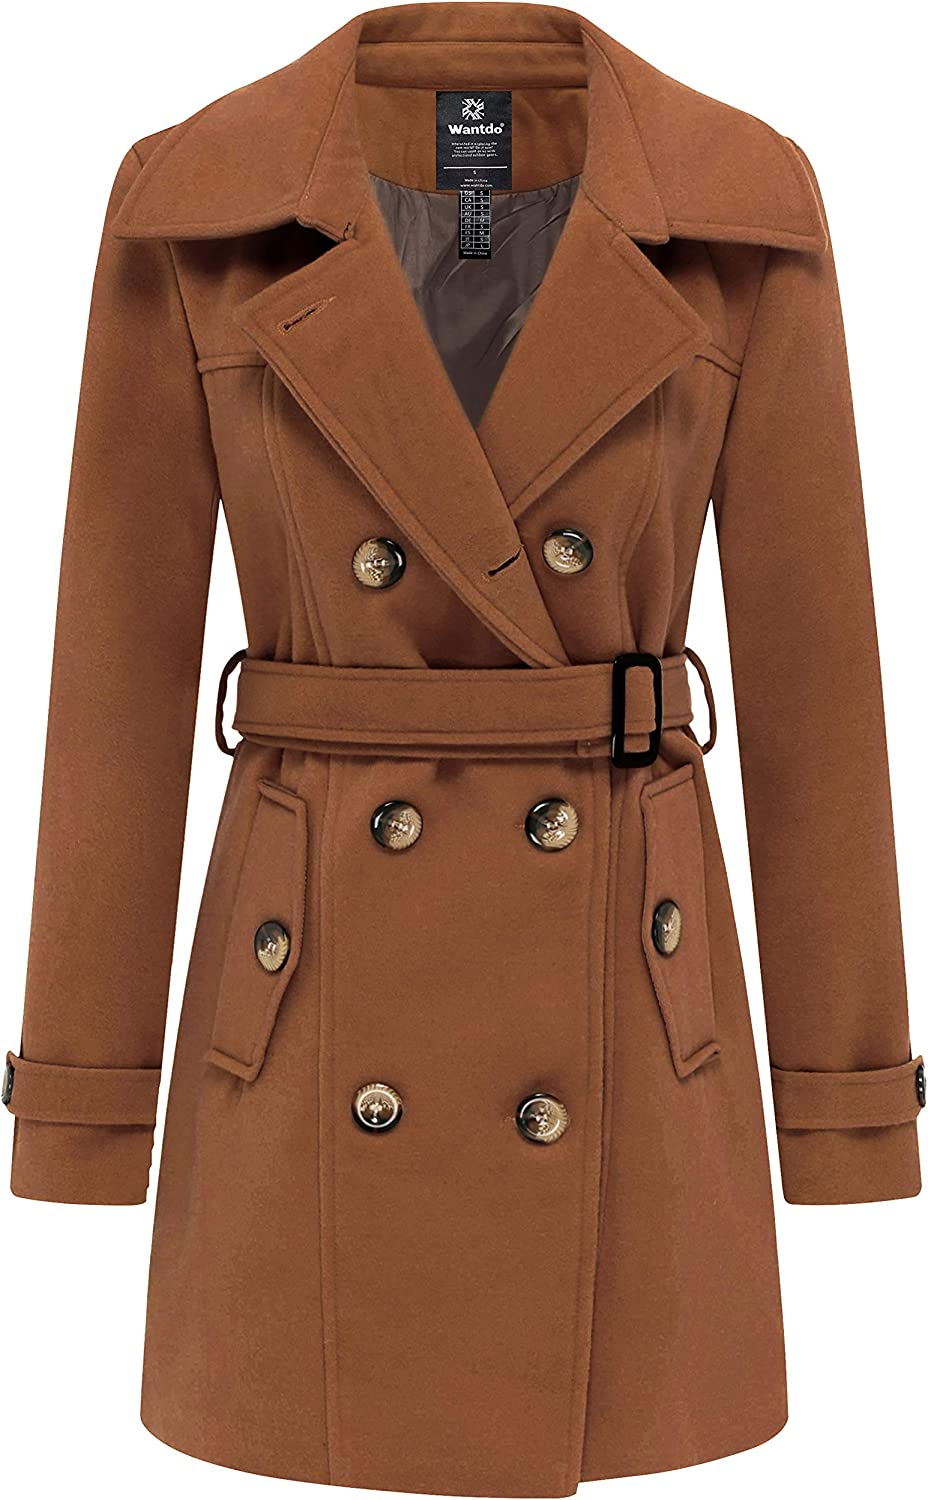 Wantdo Women's Double Breasted Pea Max 48% OFF Inventory cleanup selling sale Coat C Mid-Long Trench Winter